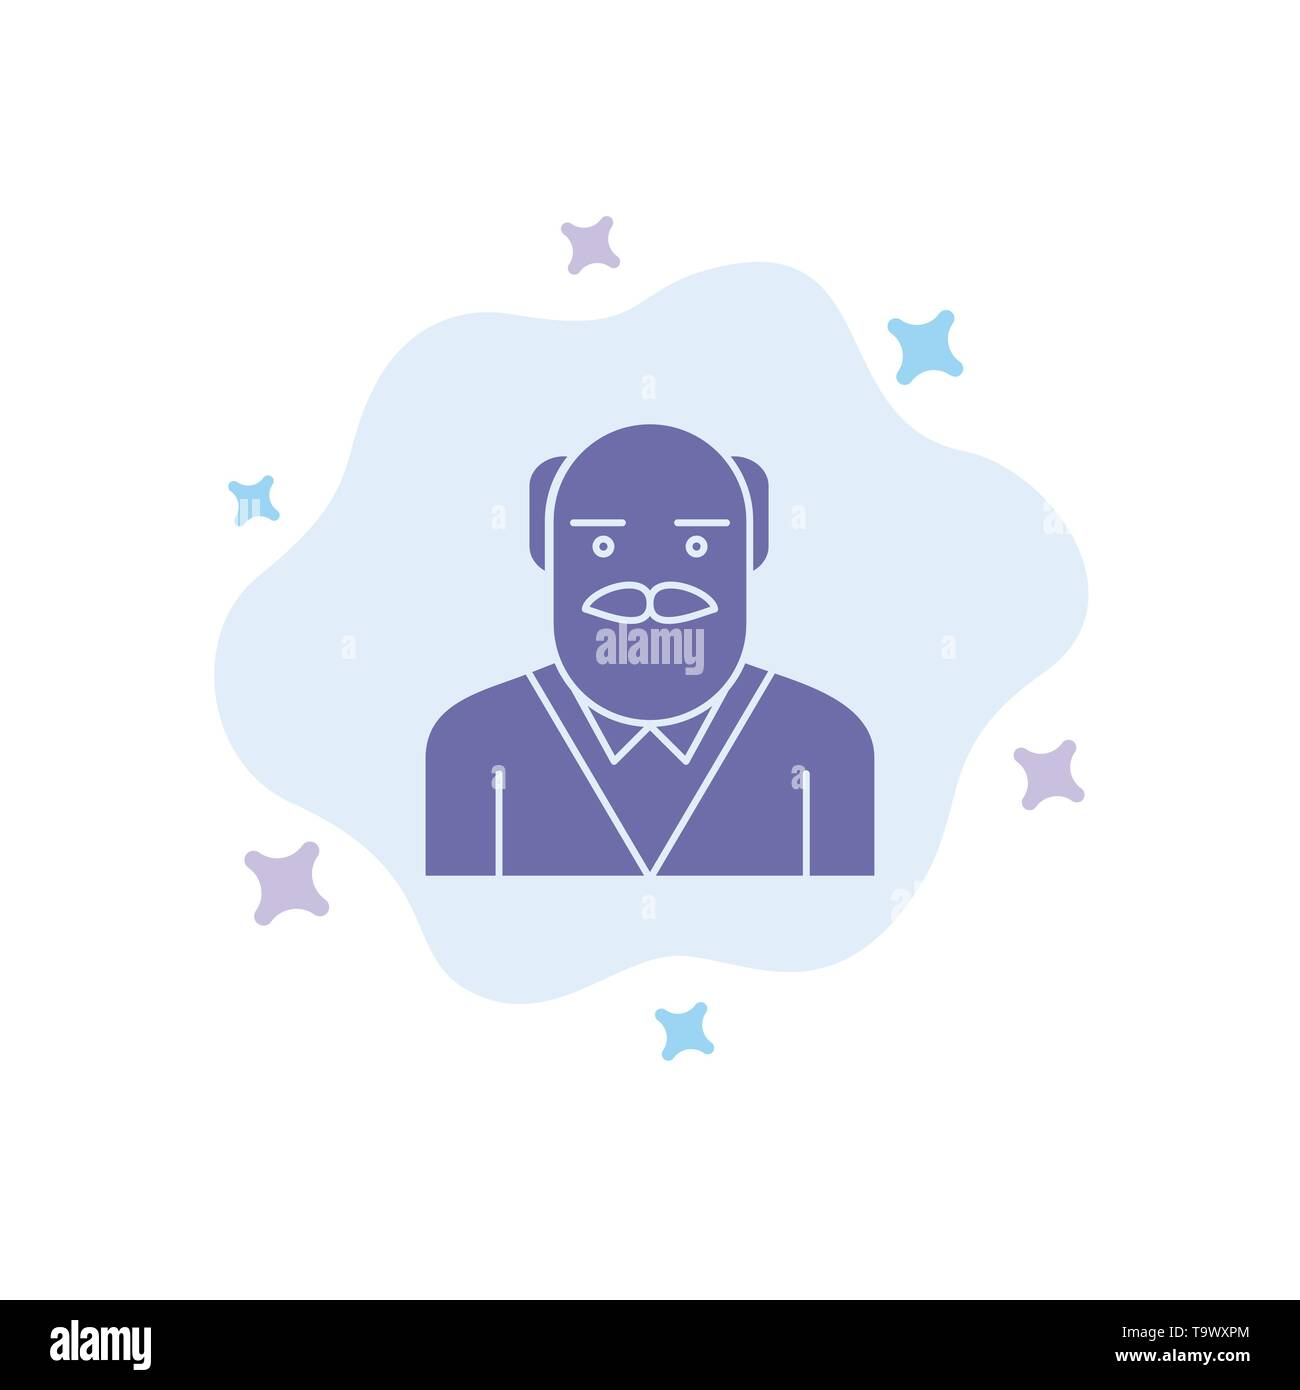 Grandpa, Father, Old Man, Uncle Blue Icon on Abstract Cloud Background - Stock Image